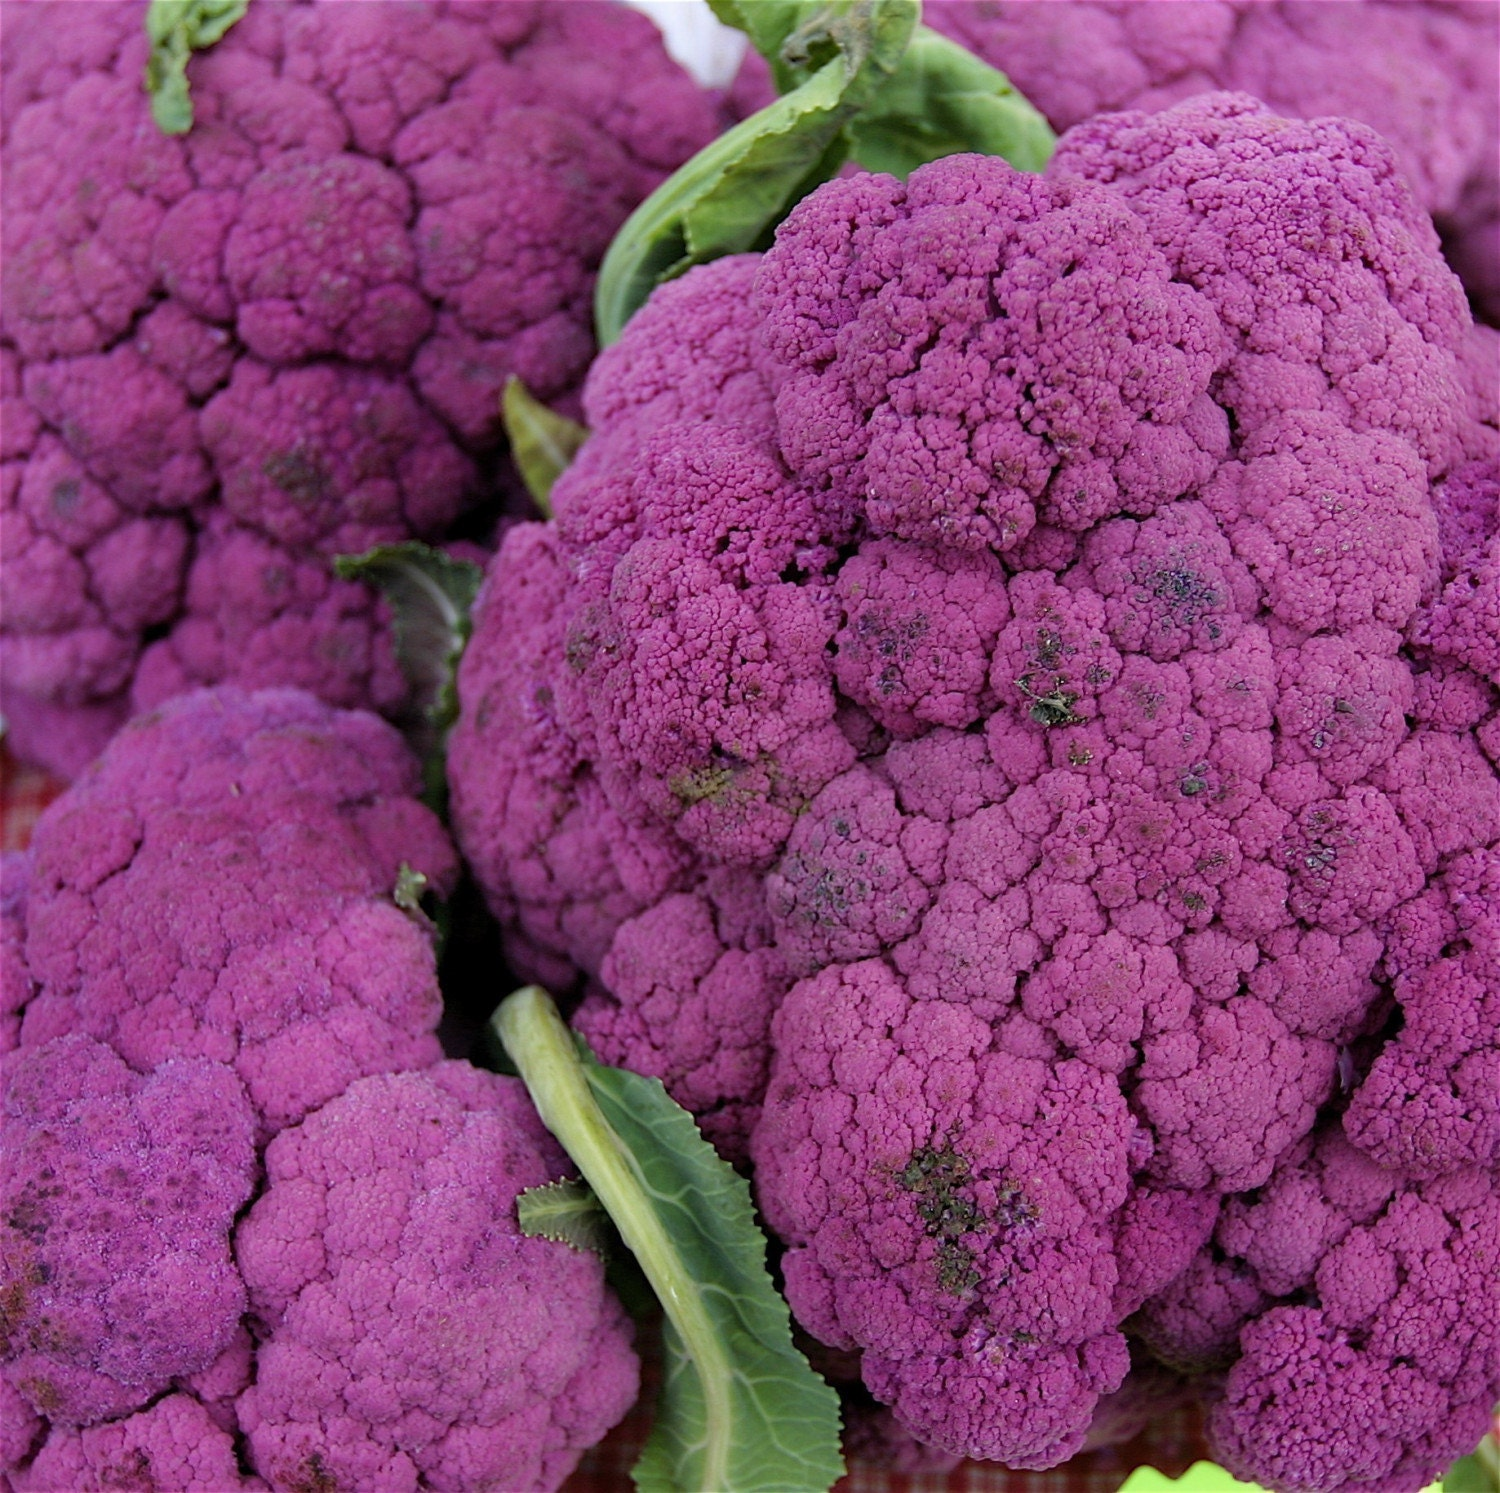 Organic Heirloom Purple of Sicily Cauliflower Garden Vegetable Seed